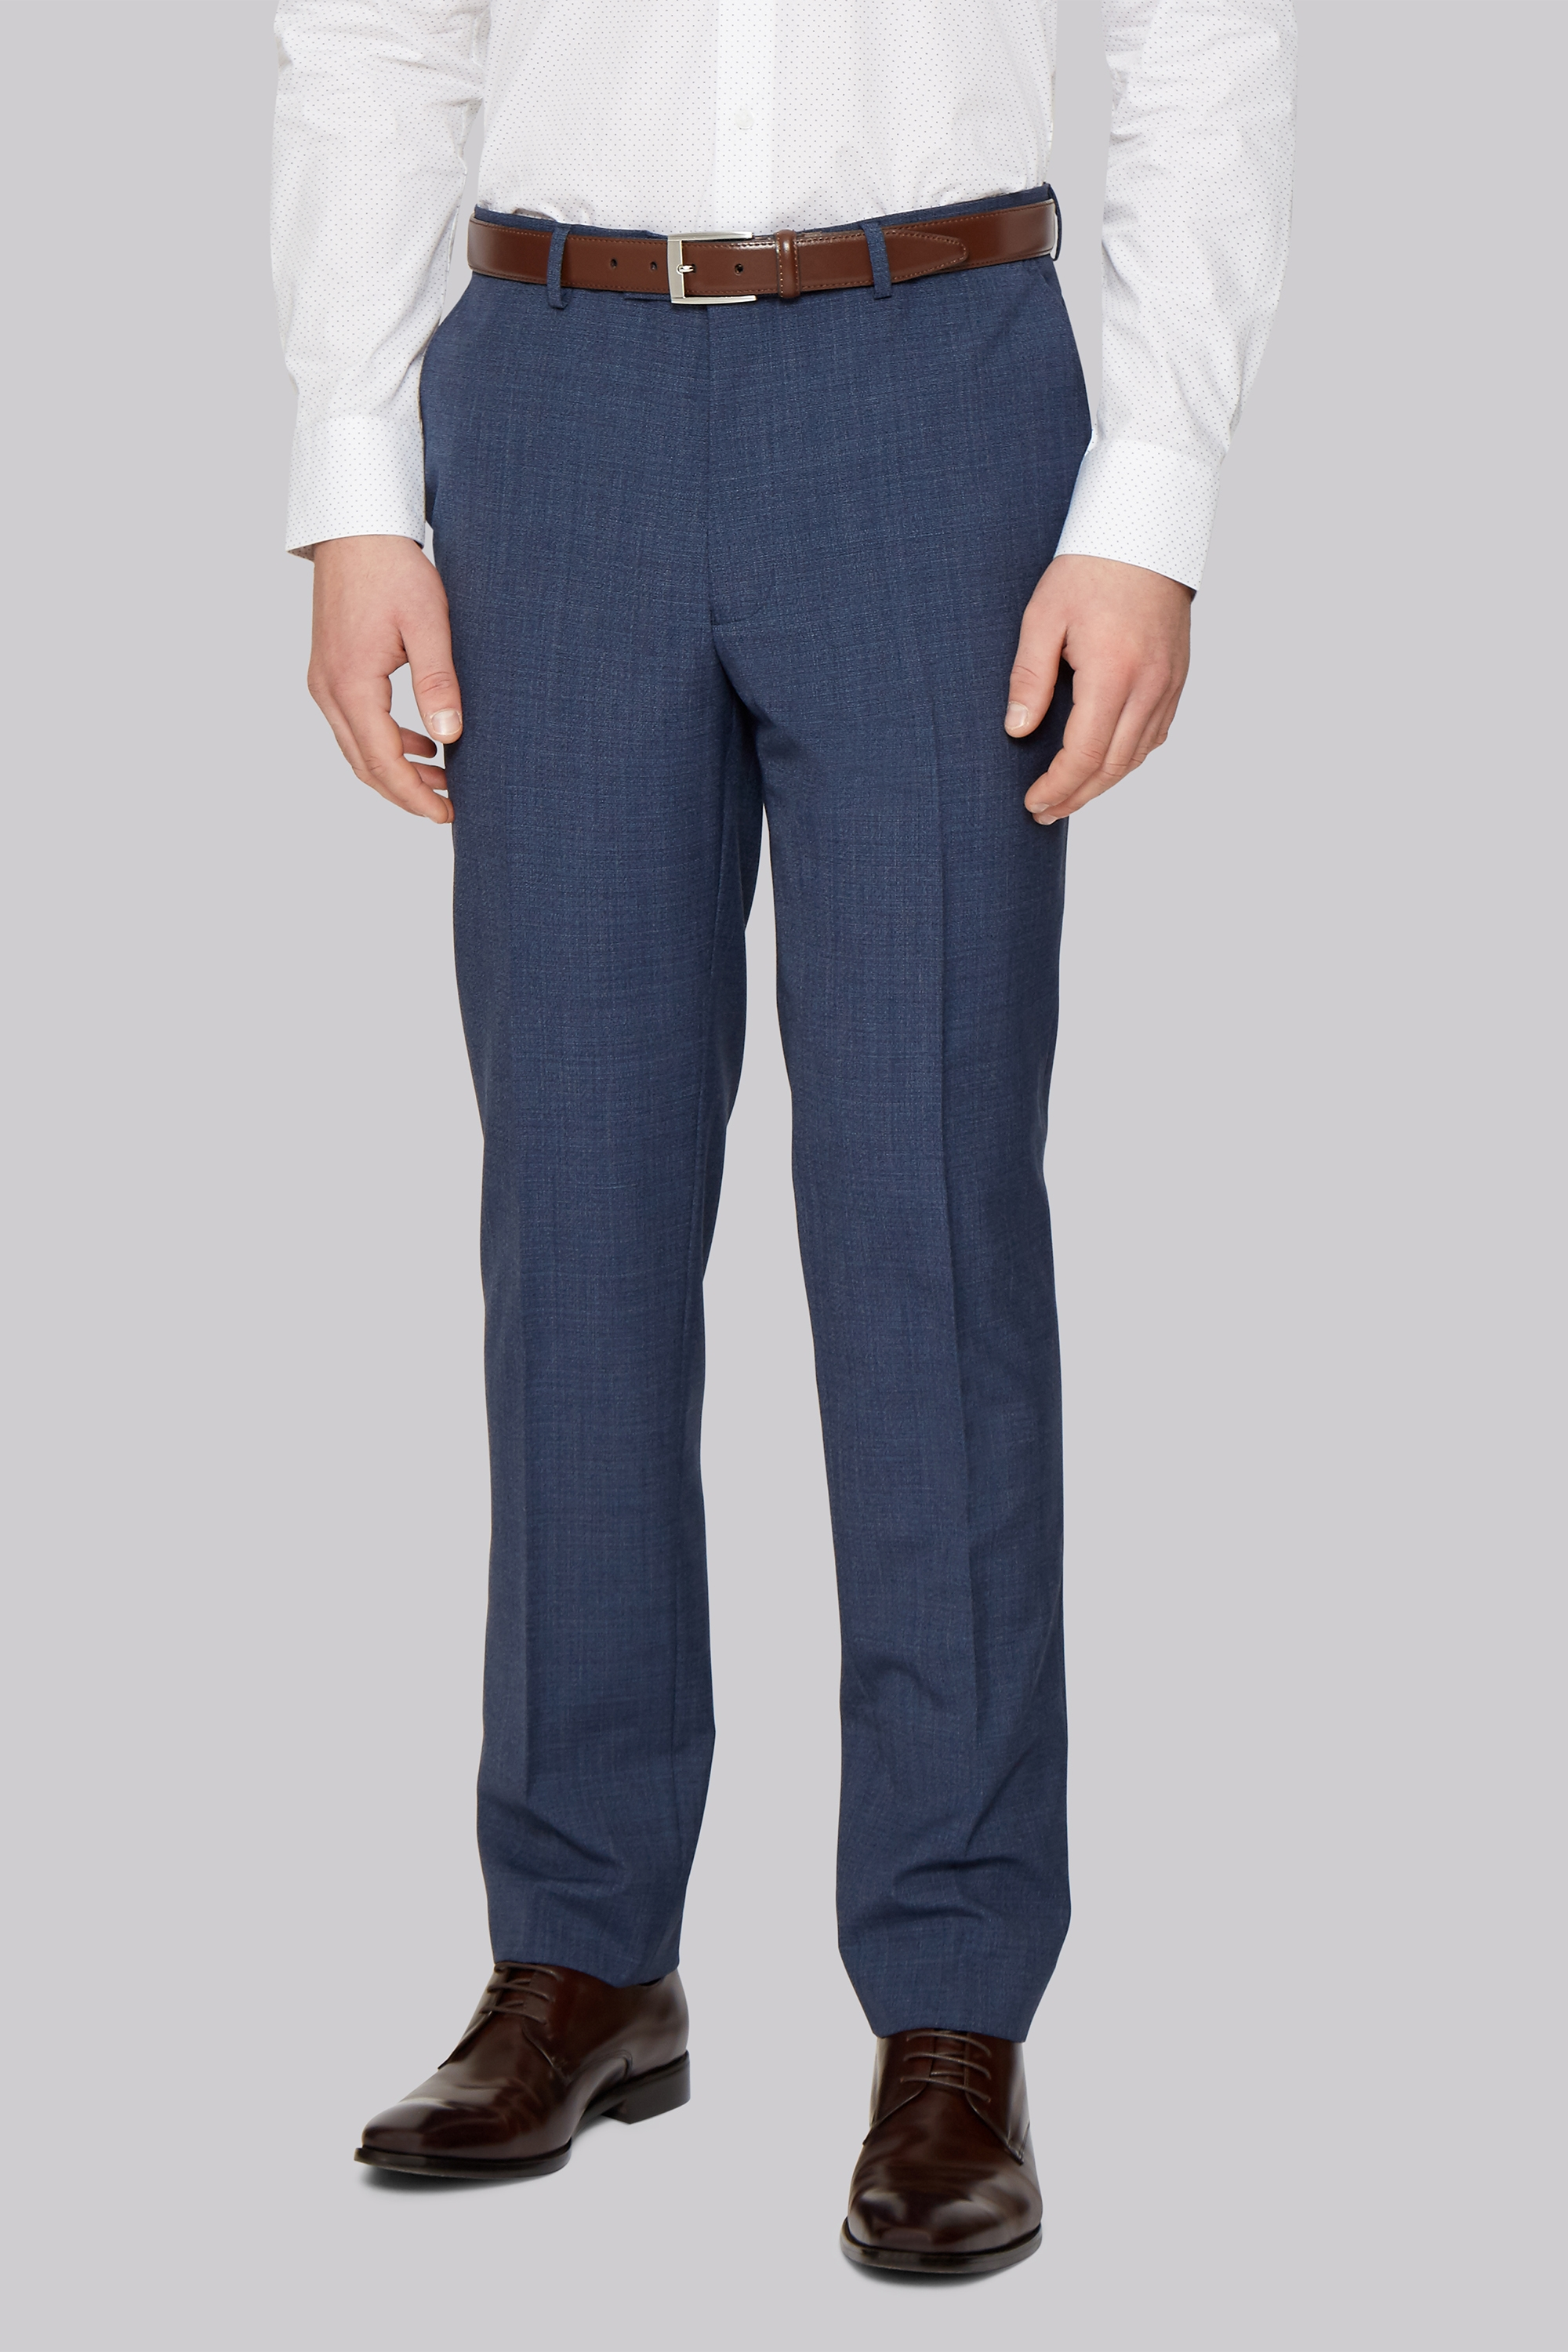 Moss Bros French Connection Slim Fit Blue Textured Trousers